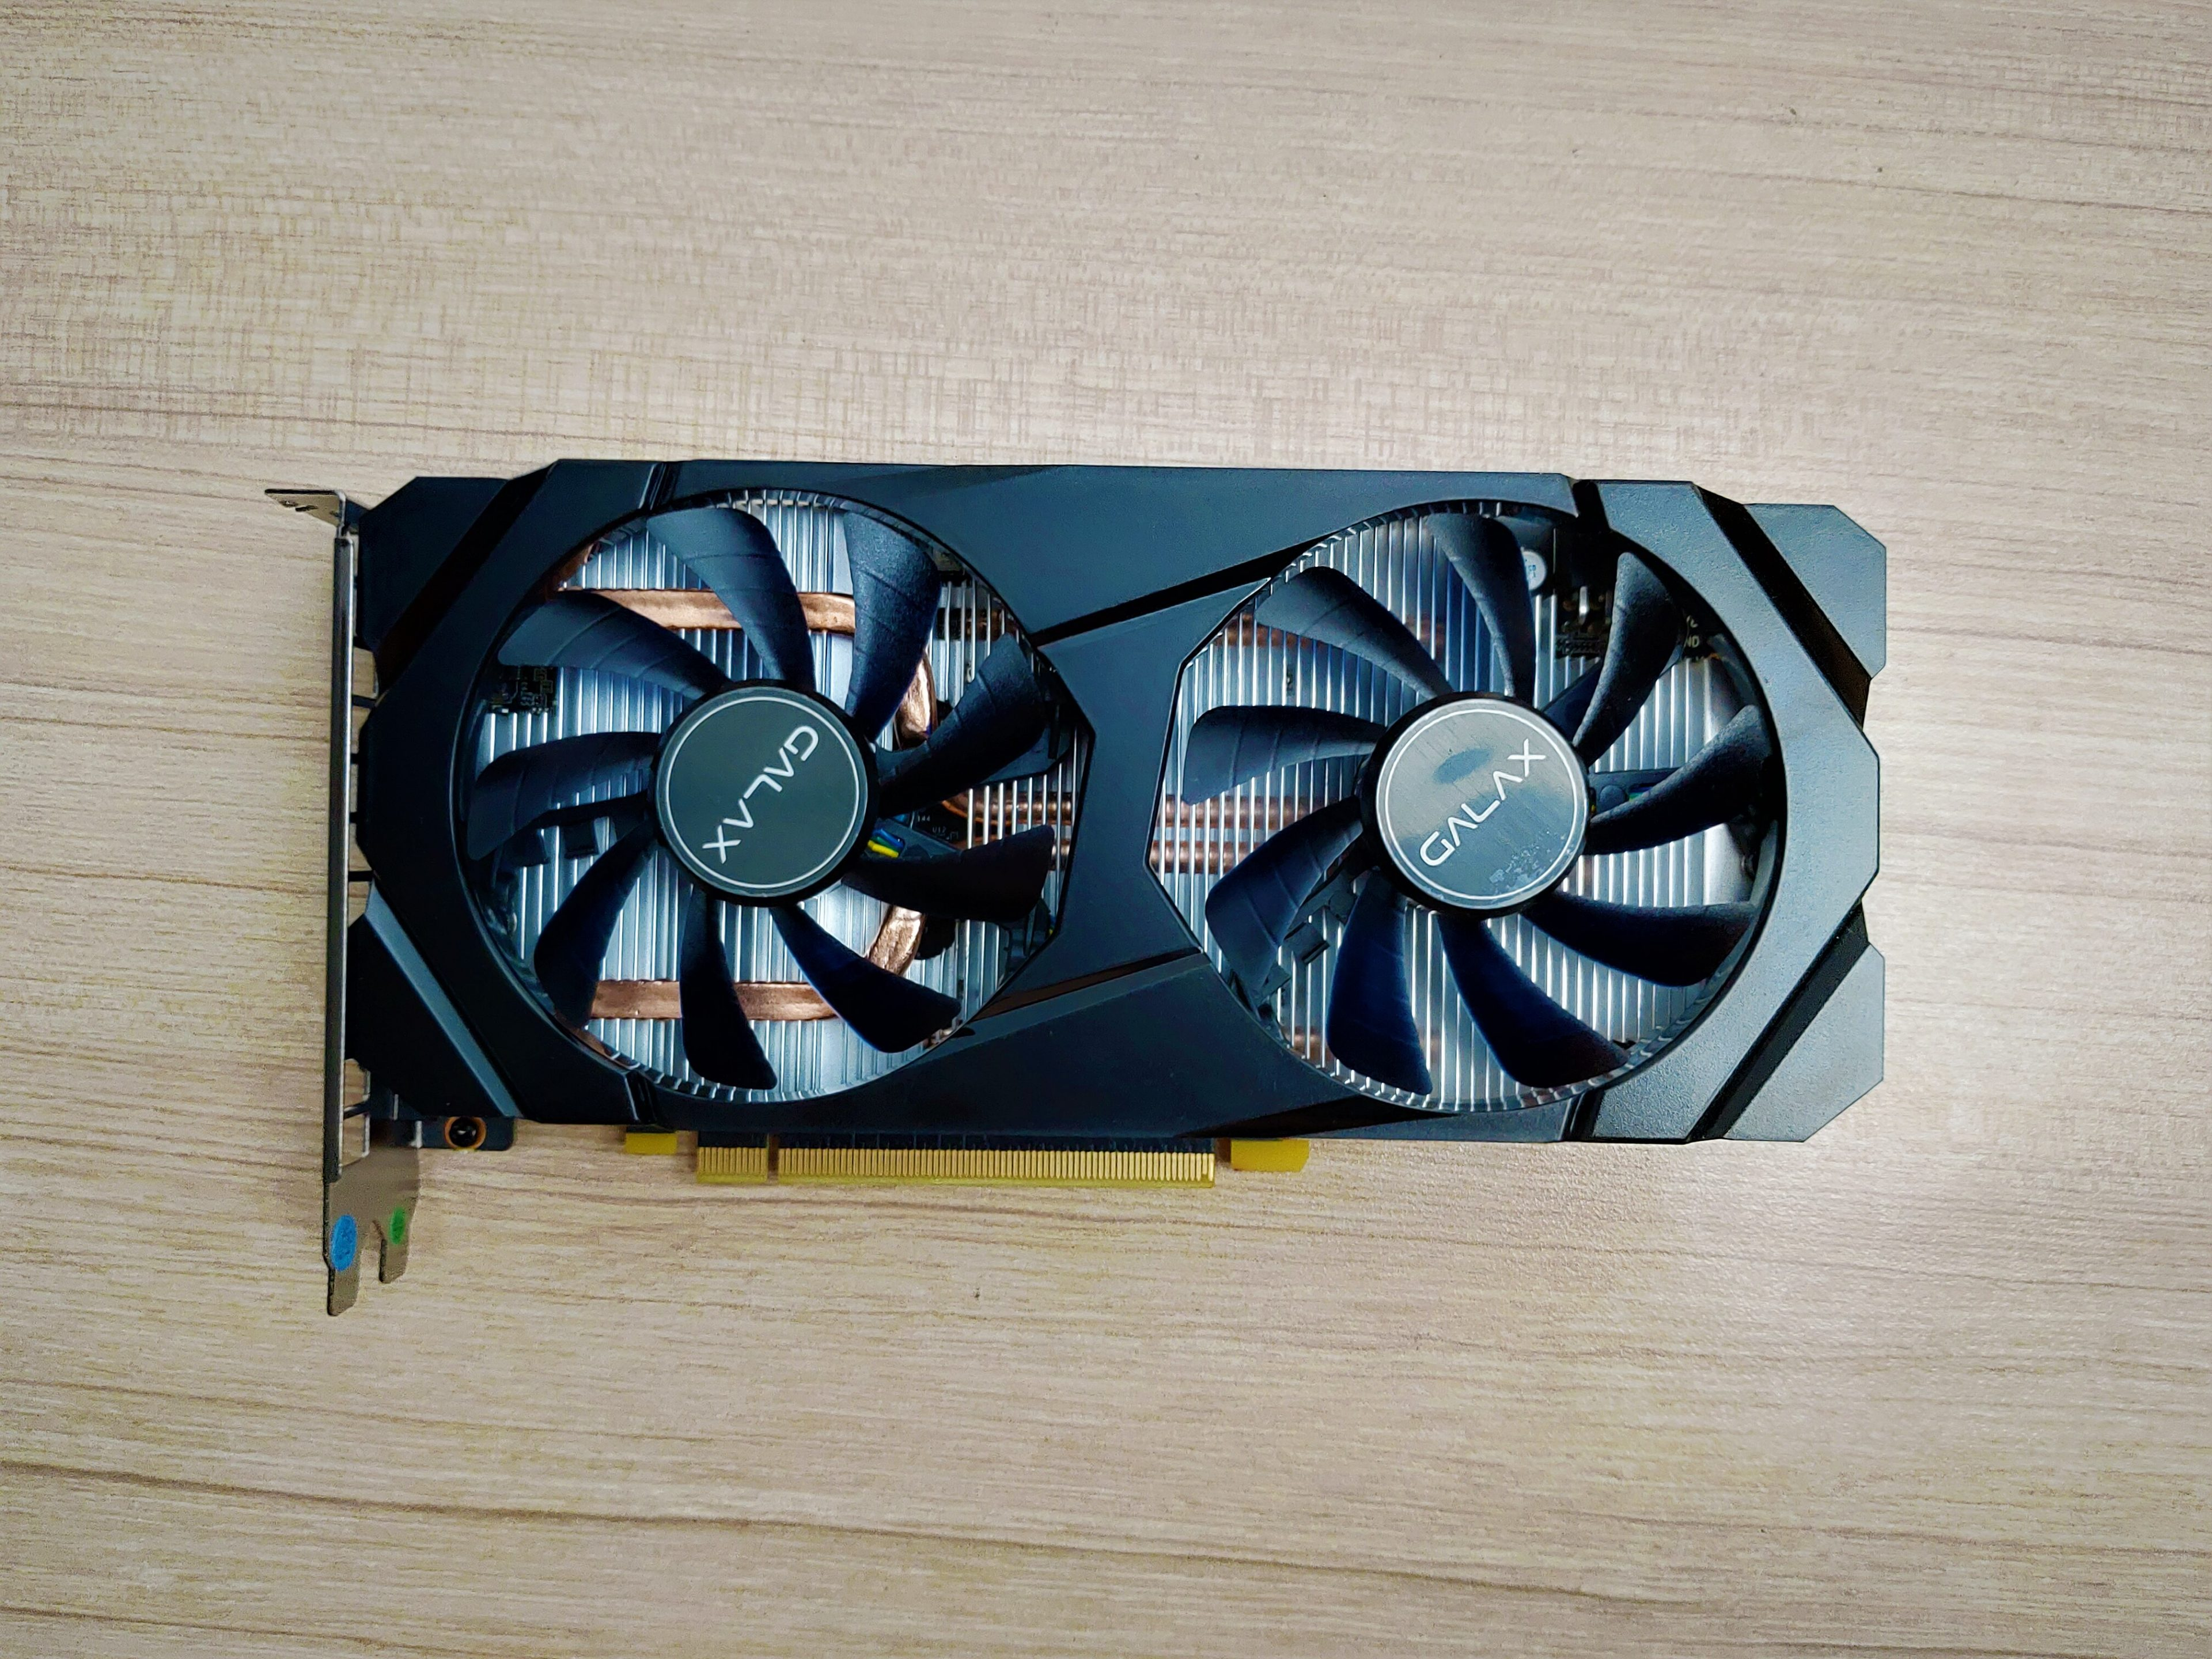 REVIEW | Galax GTX 1660 Super: The Difference